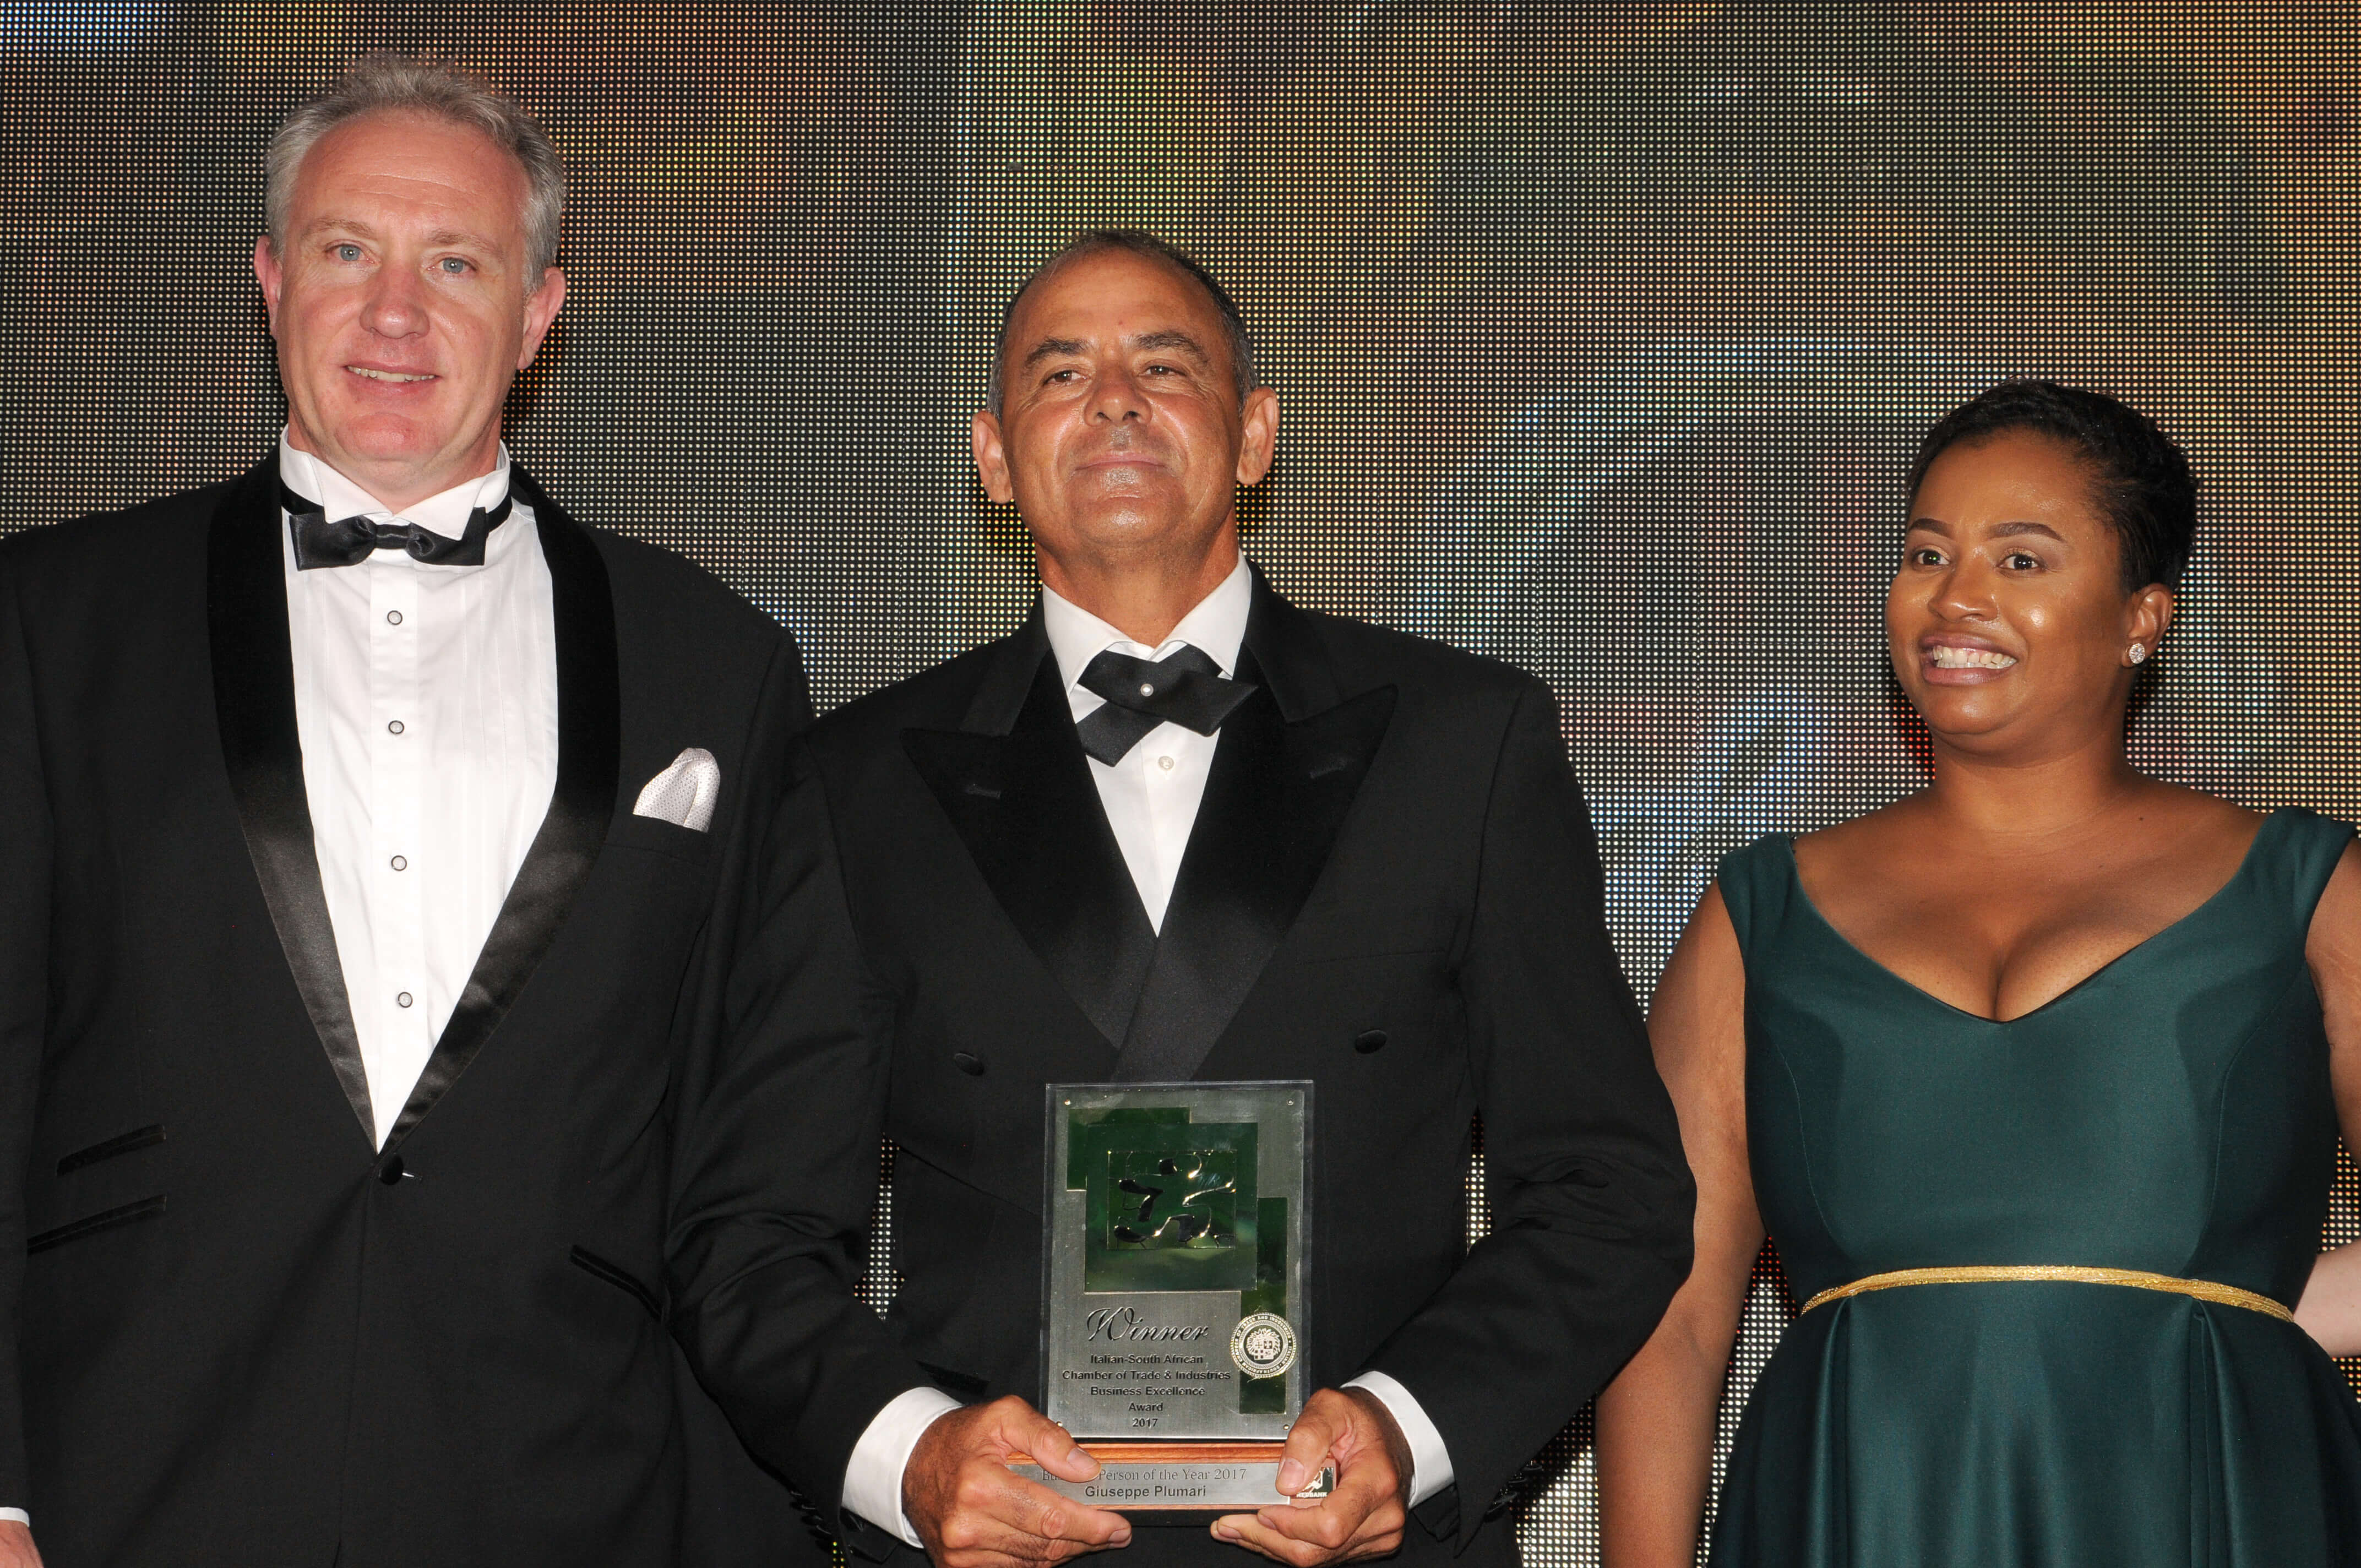 Steyn City Properties CEO named Business Person of the Year